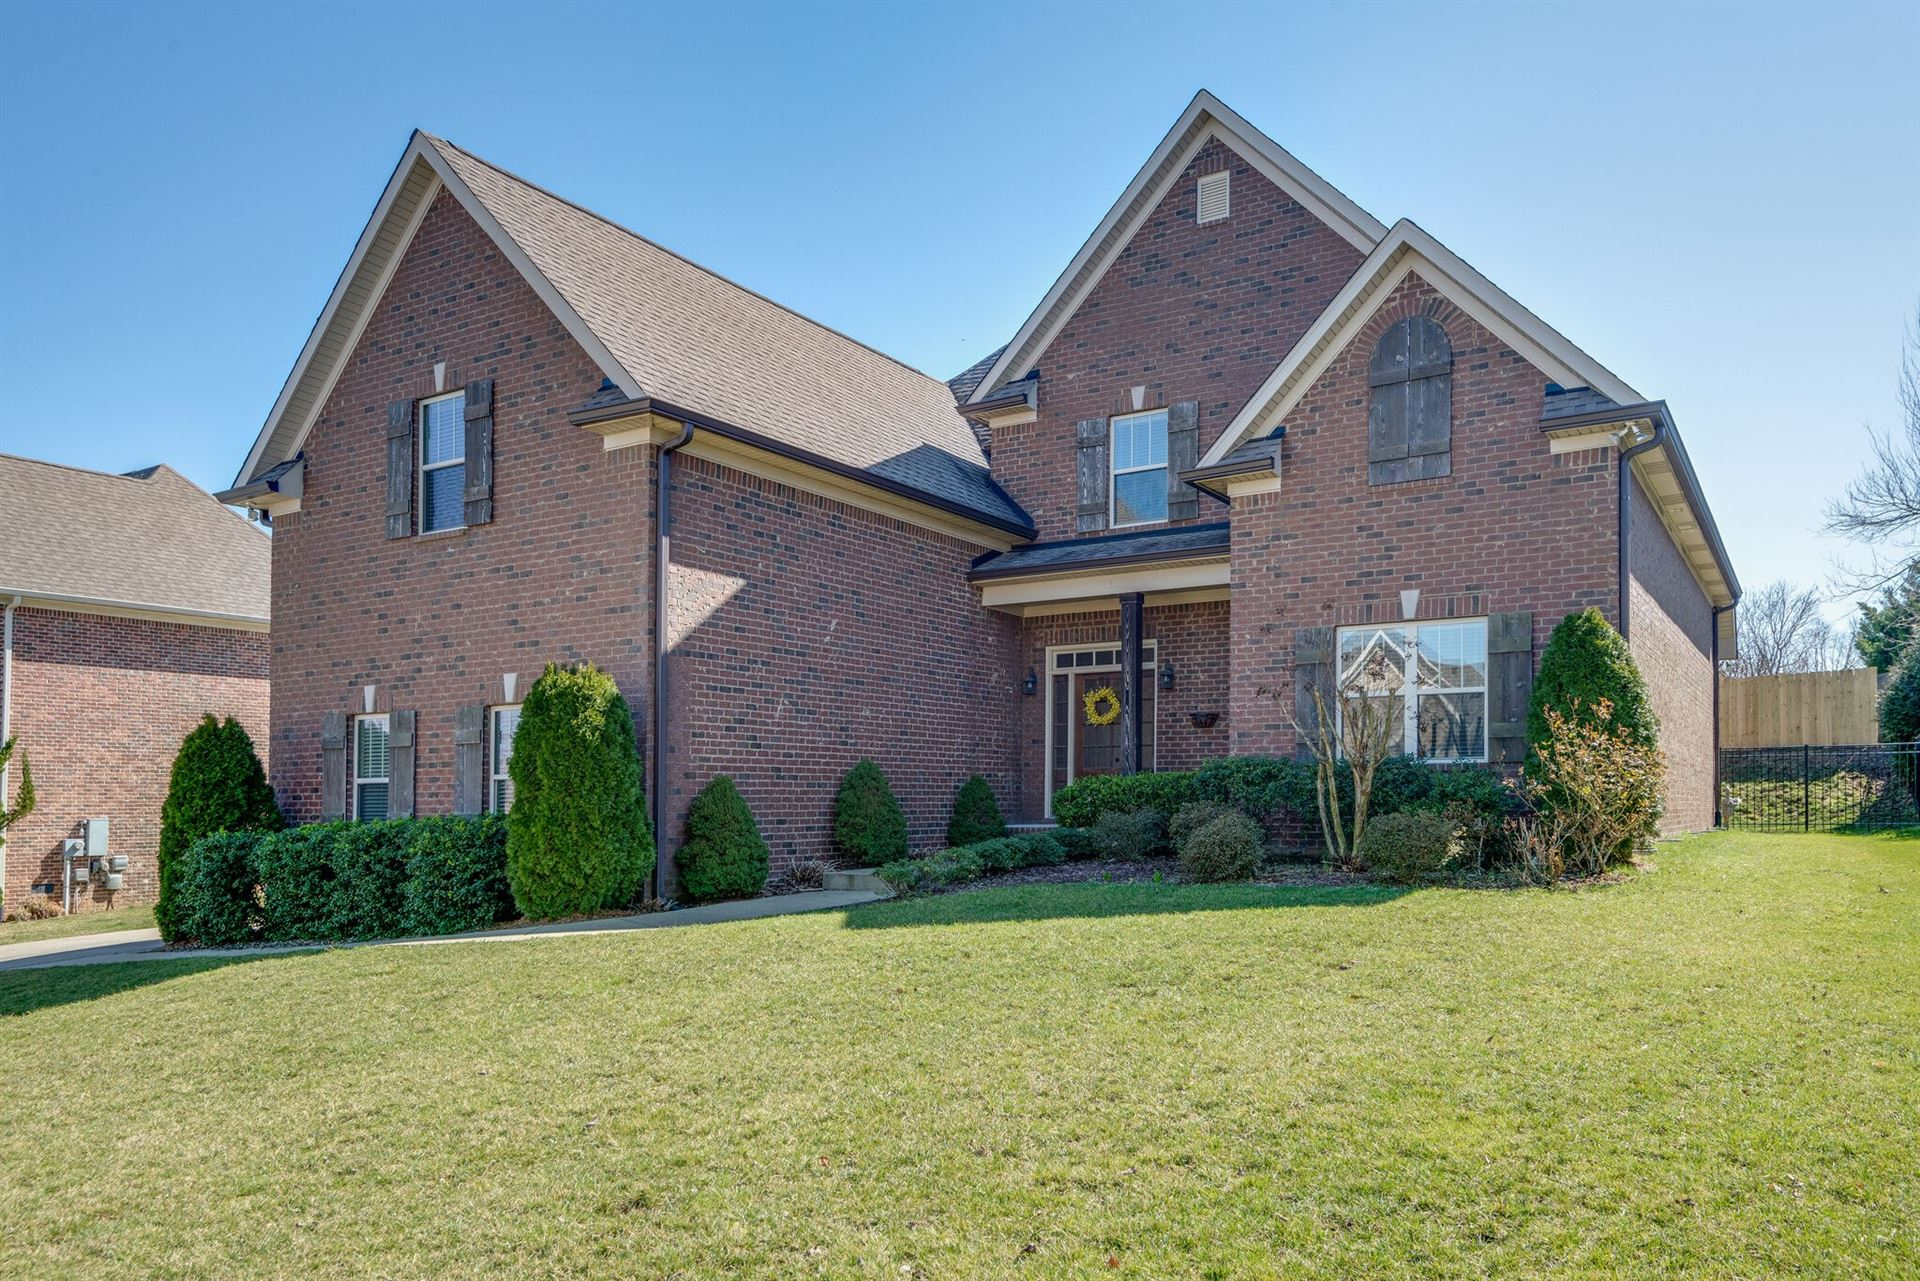 Photo of 1026 Nealcrest Cir, Spring Hill, TN 37174 (MLS # 2231437)